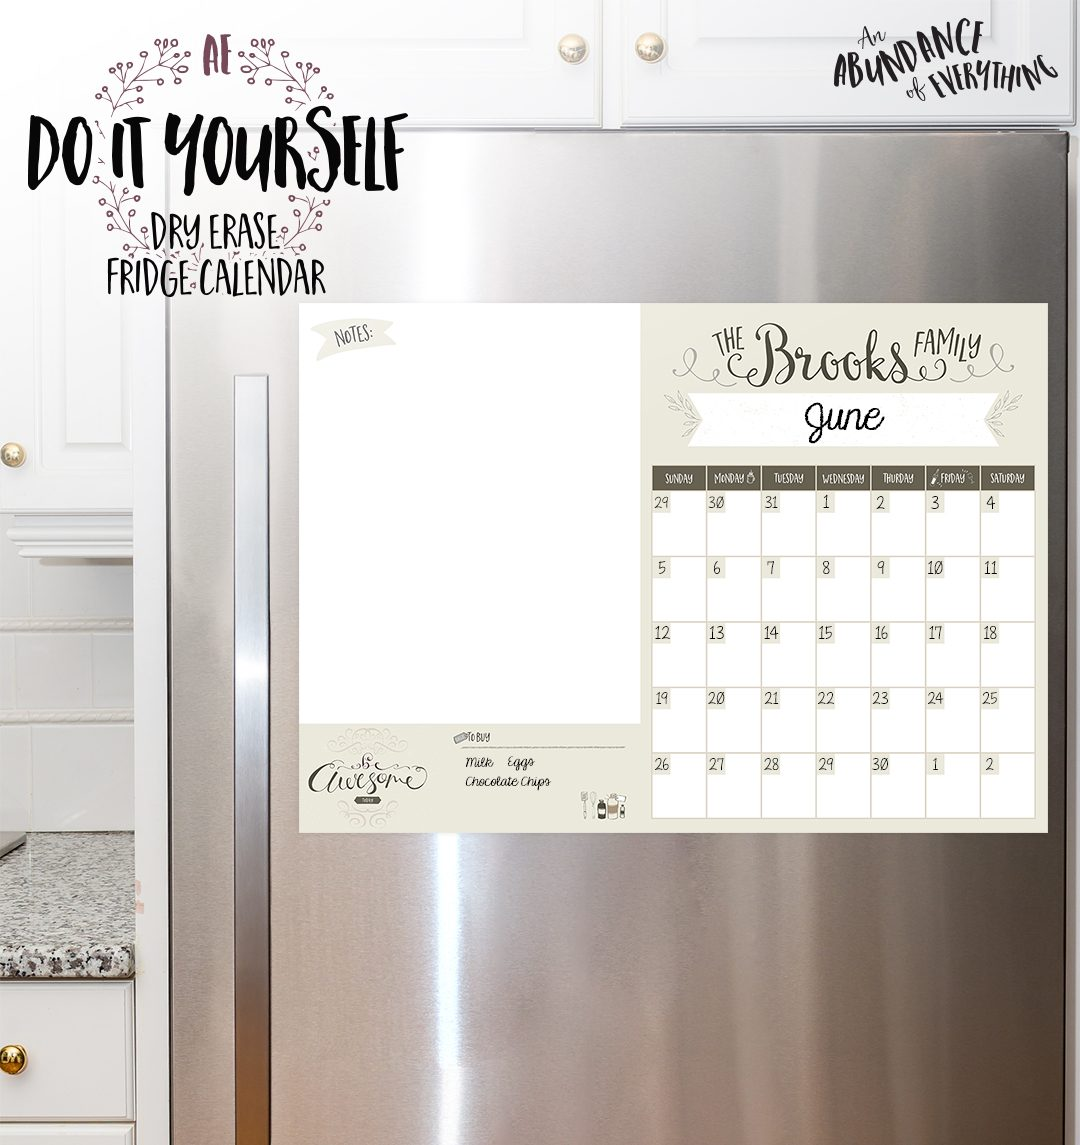 Do it Yourself Dry Erase Fridge Calendar